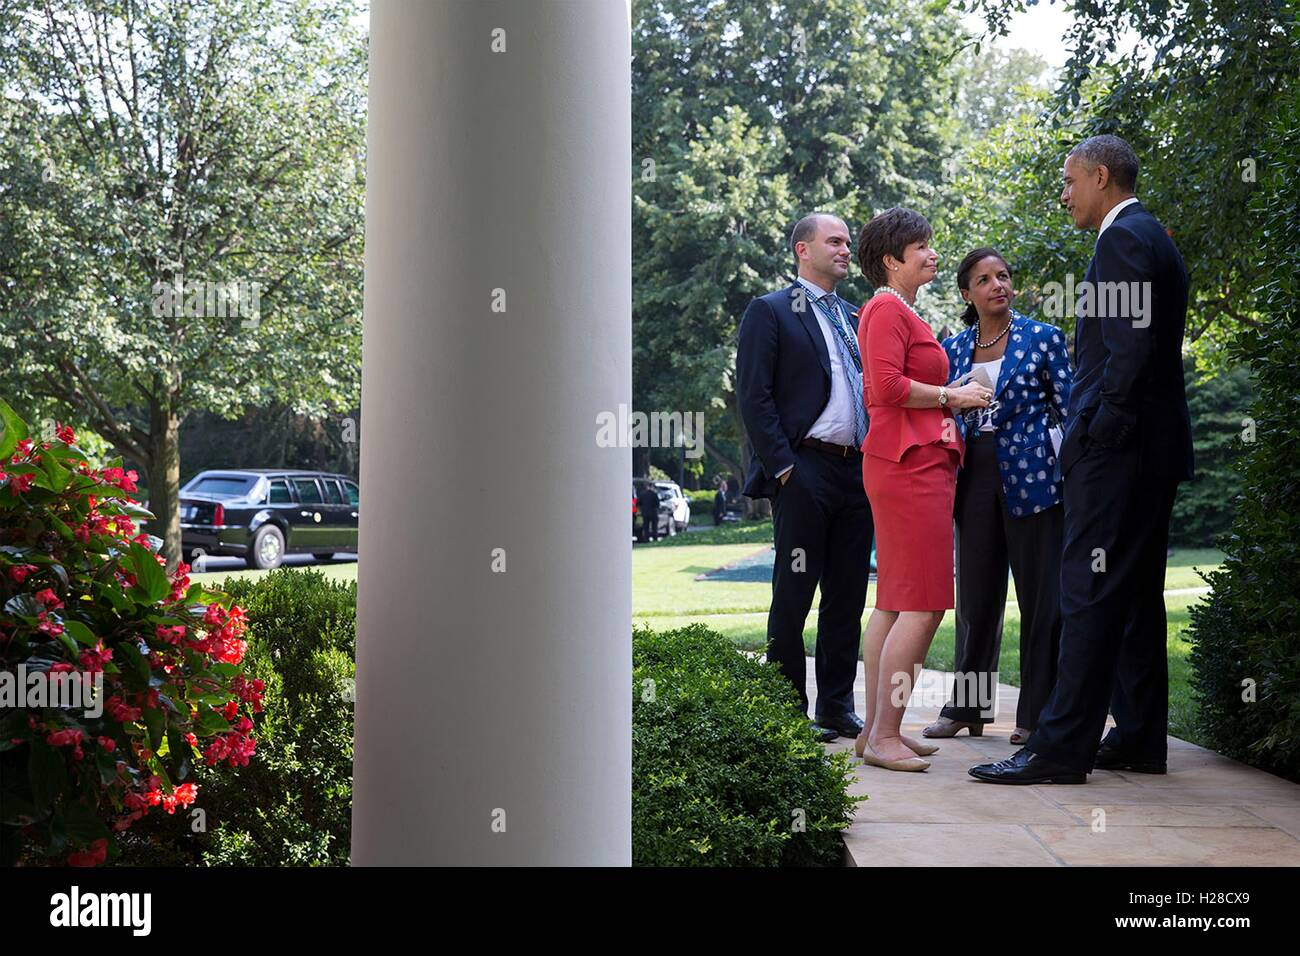 U.S. President Barack Obama talks with National Security advisors outside the White House Oval Office during the U.S.-Africa Business Forum August 5, 2014 in Washington, DC. Stock Photo